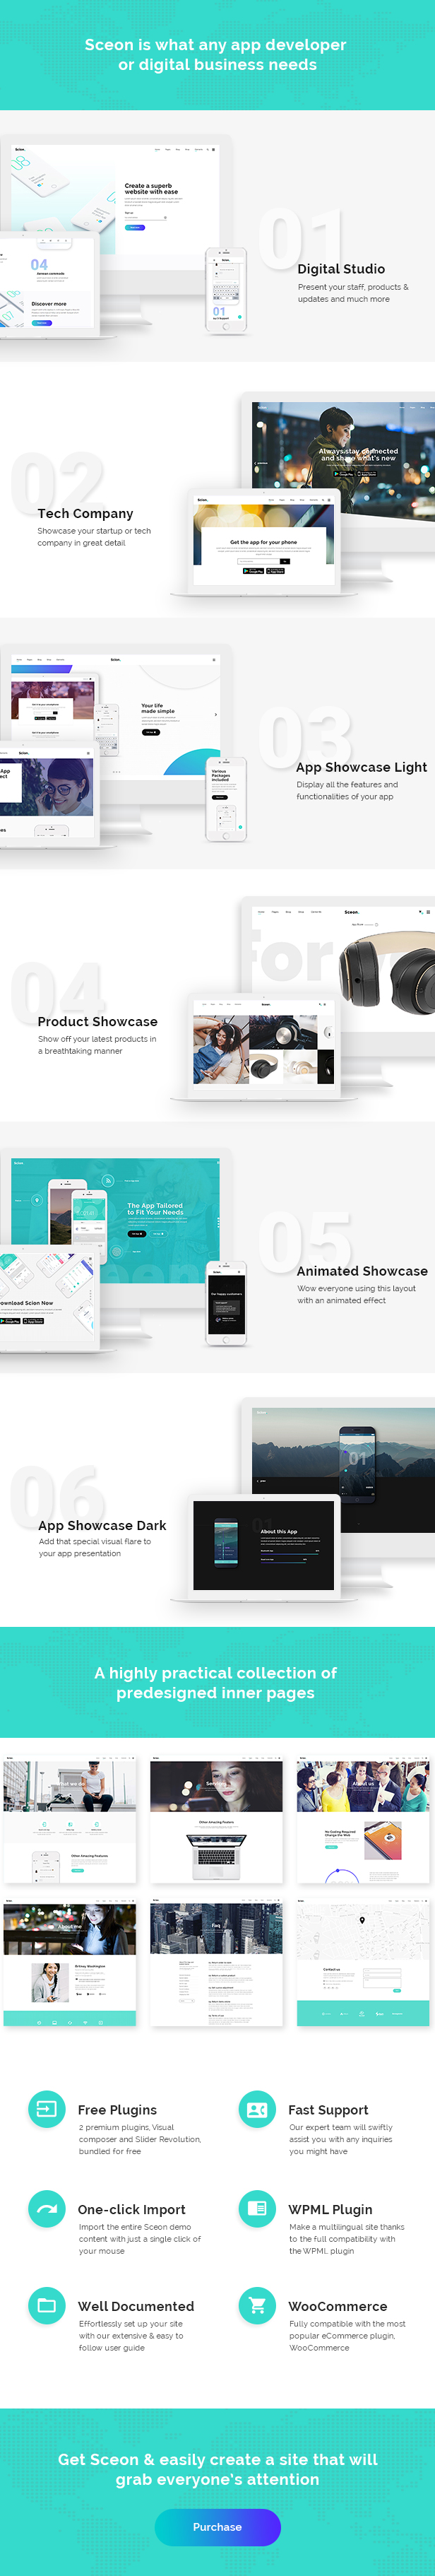 Sceon - App Landing Page & Startup Theme - 1